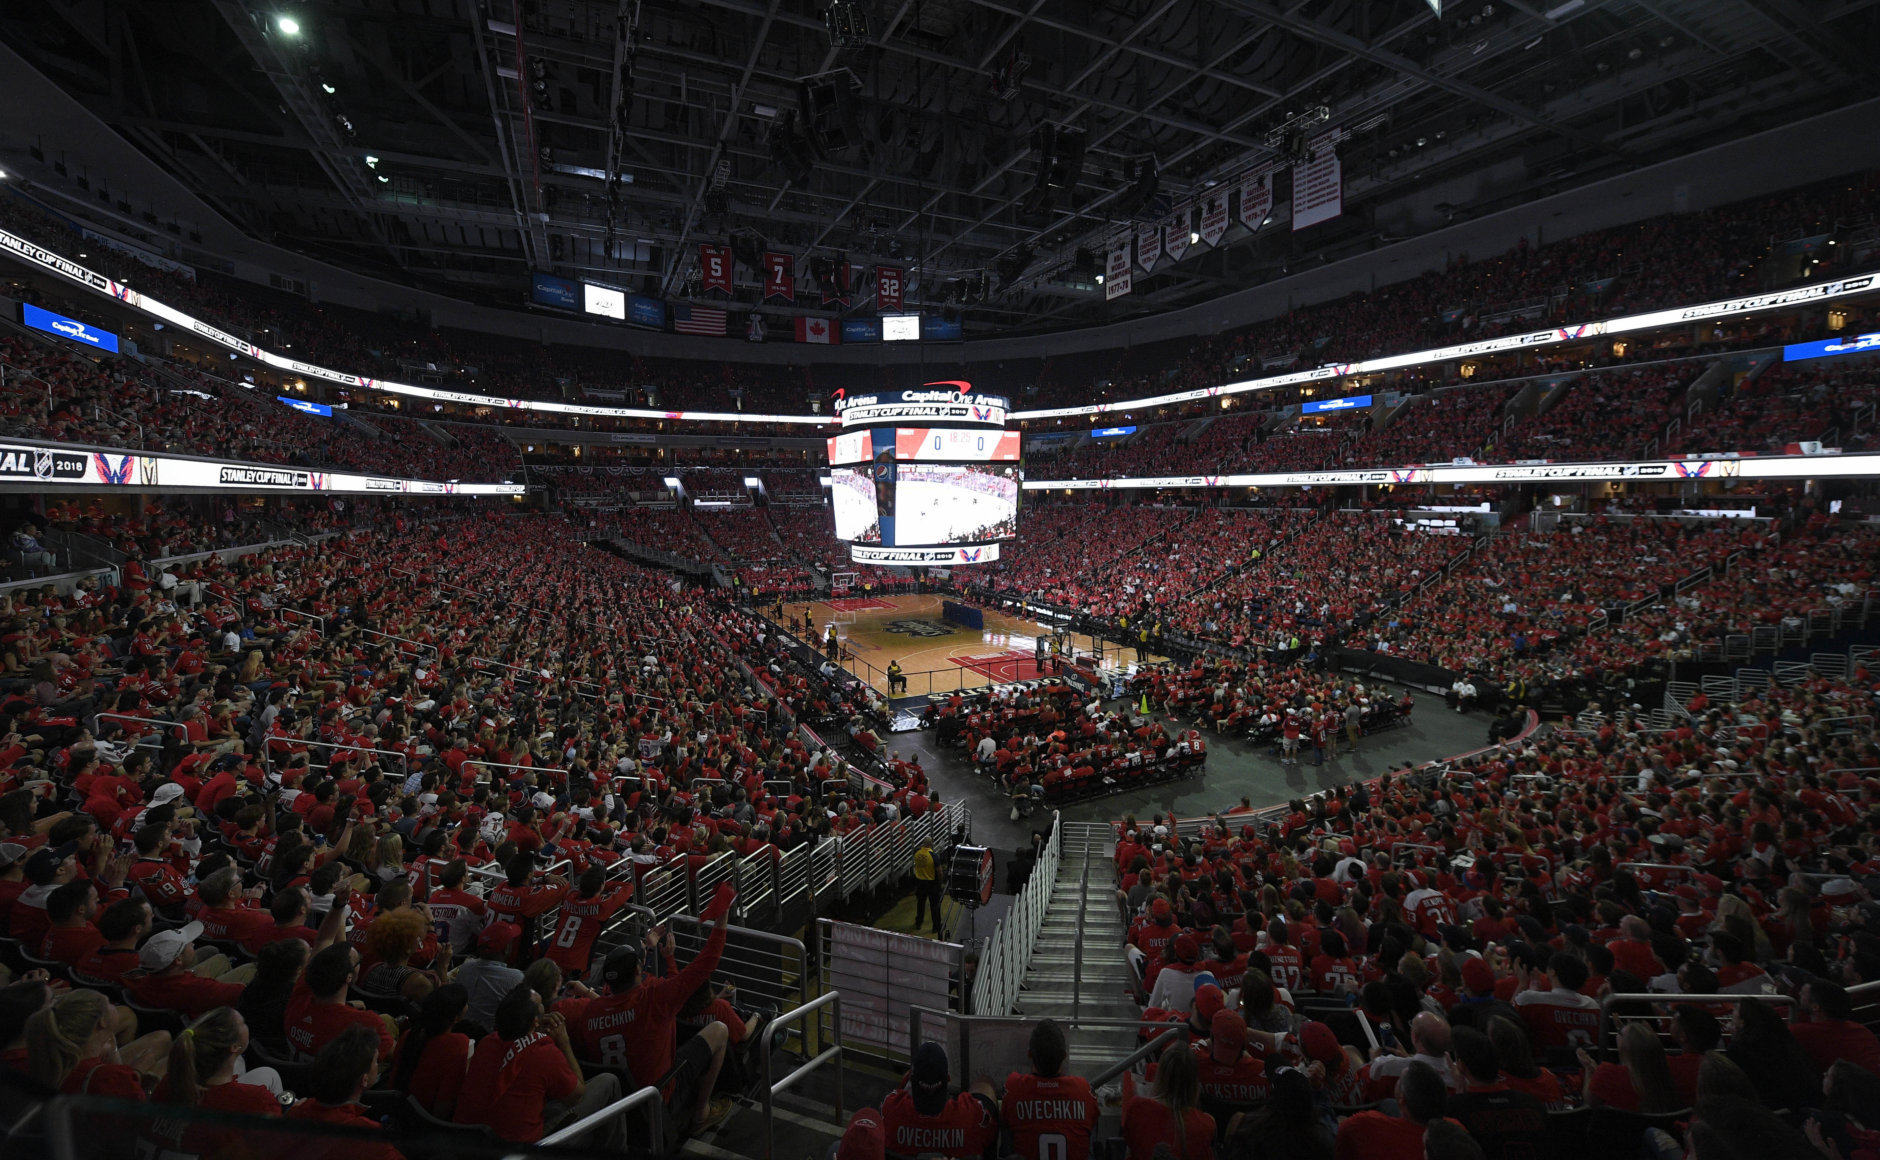 Fans attend a viewing party for Game 5 of the NHL hockey Stanley Cup Final between the Washington Capitals and the Vegas Golden Knights, Thursday, June 7, 2018, in Washington. (AP Photo/Nick Wass)